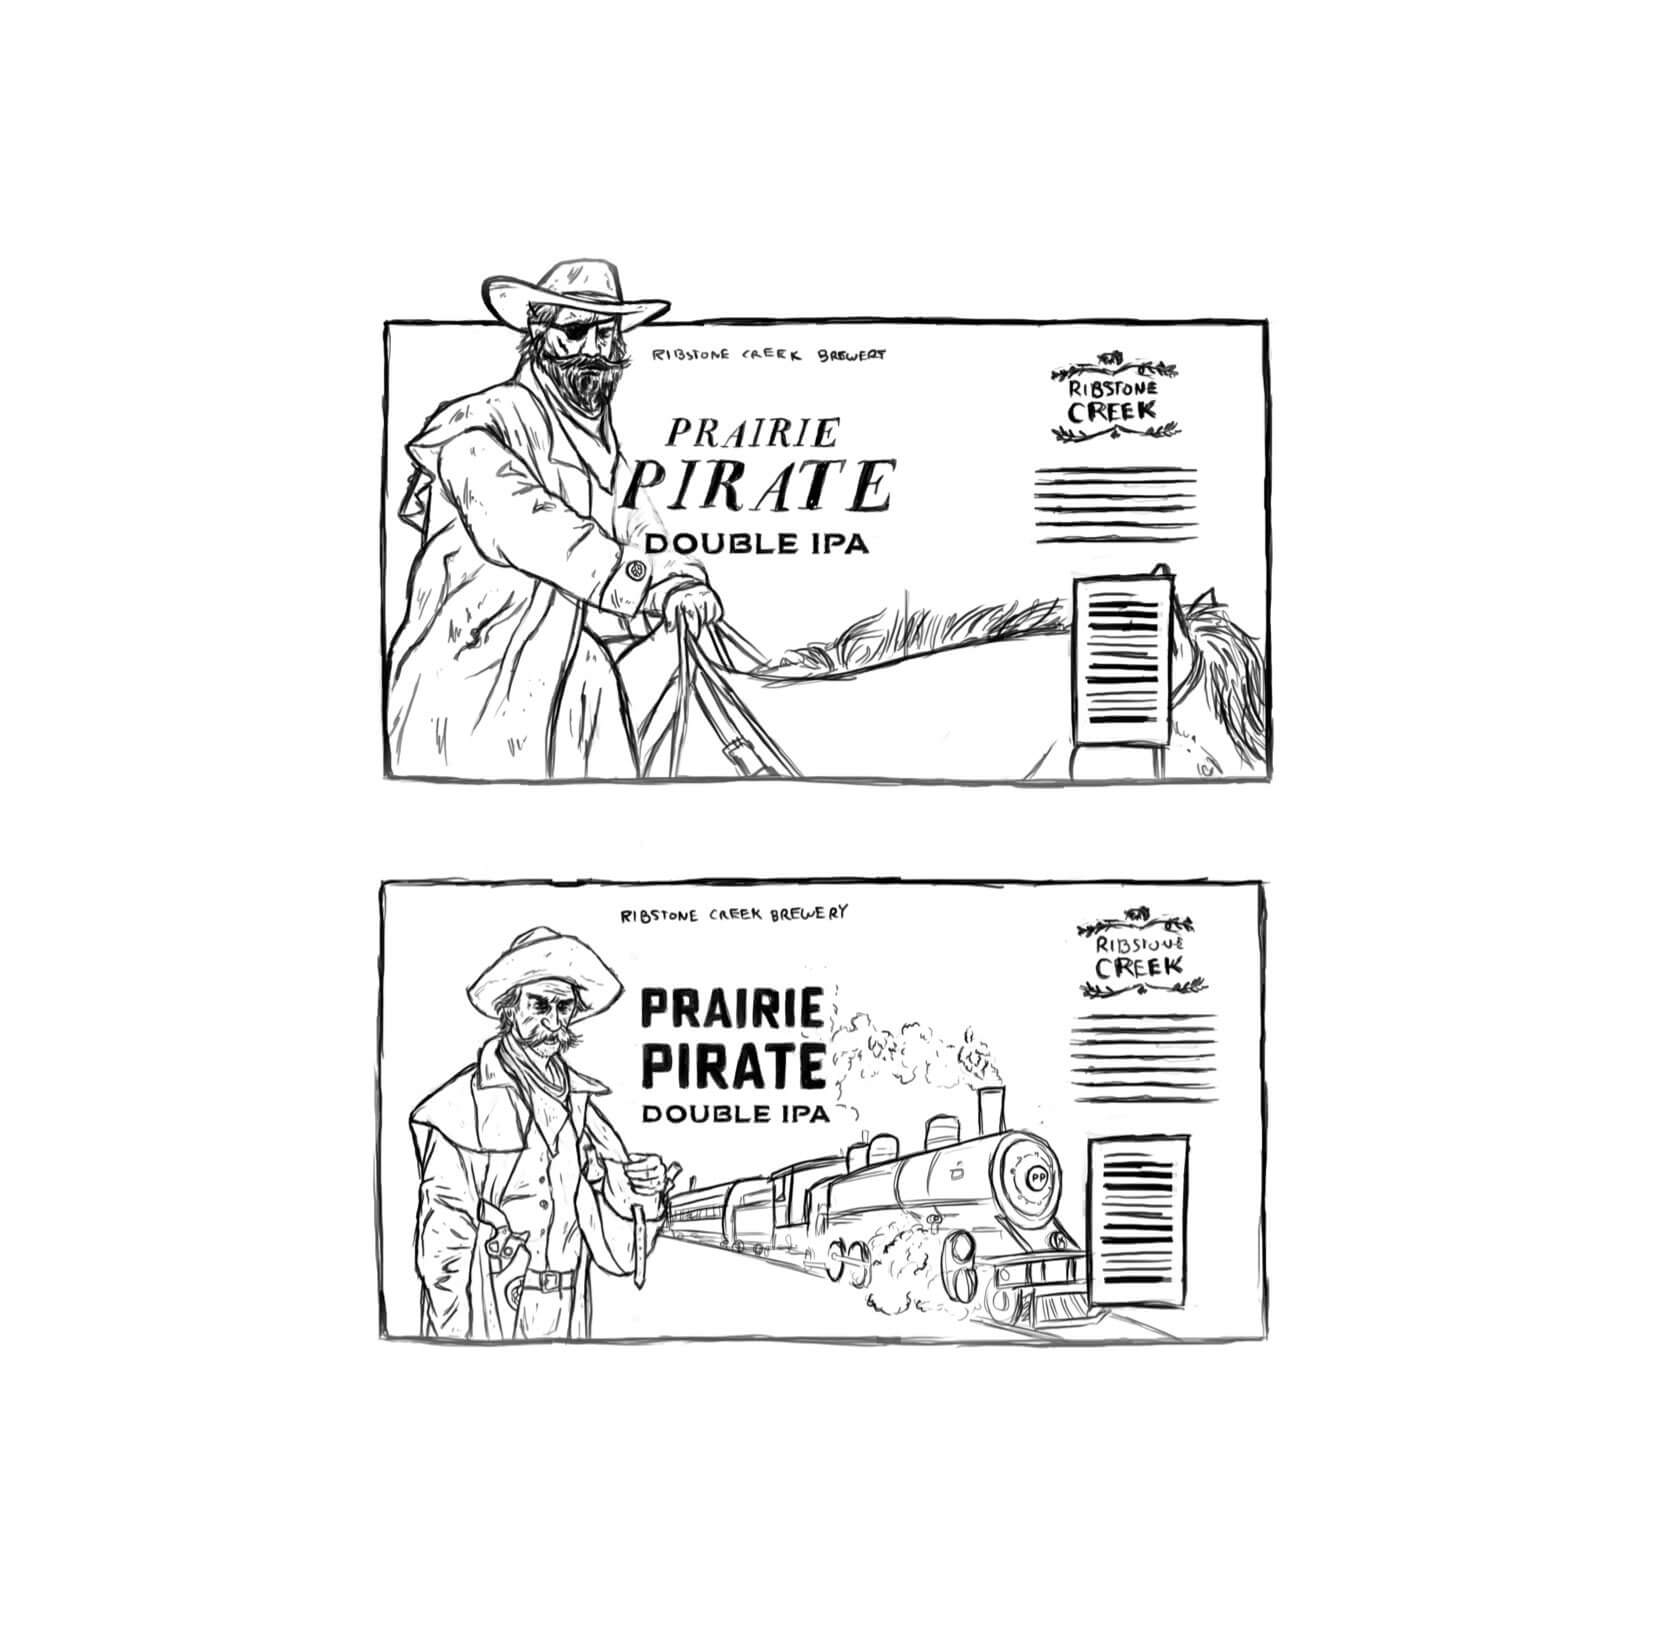 prairie pirate beer label concept sketches